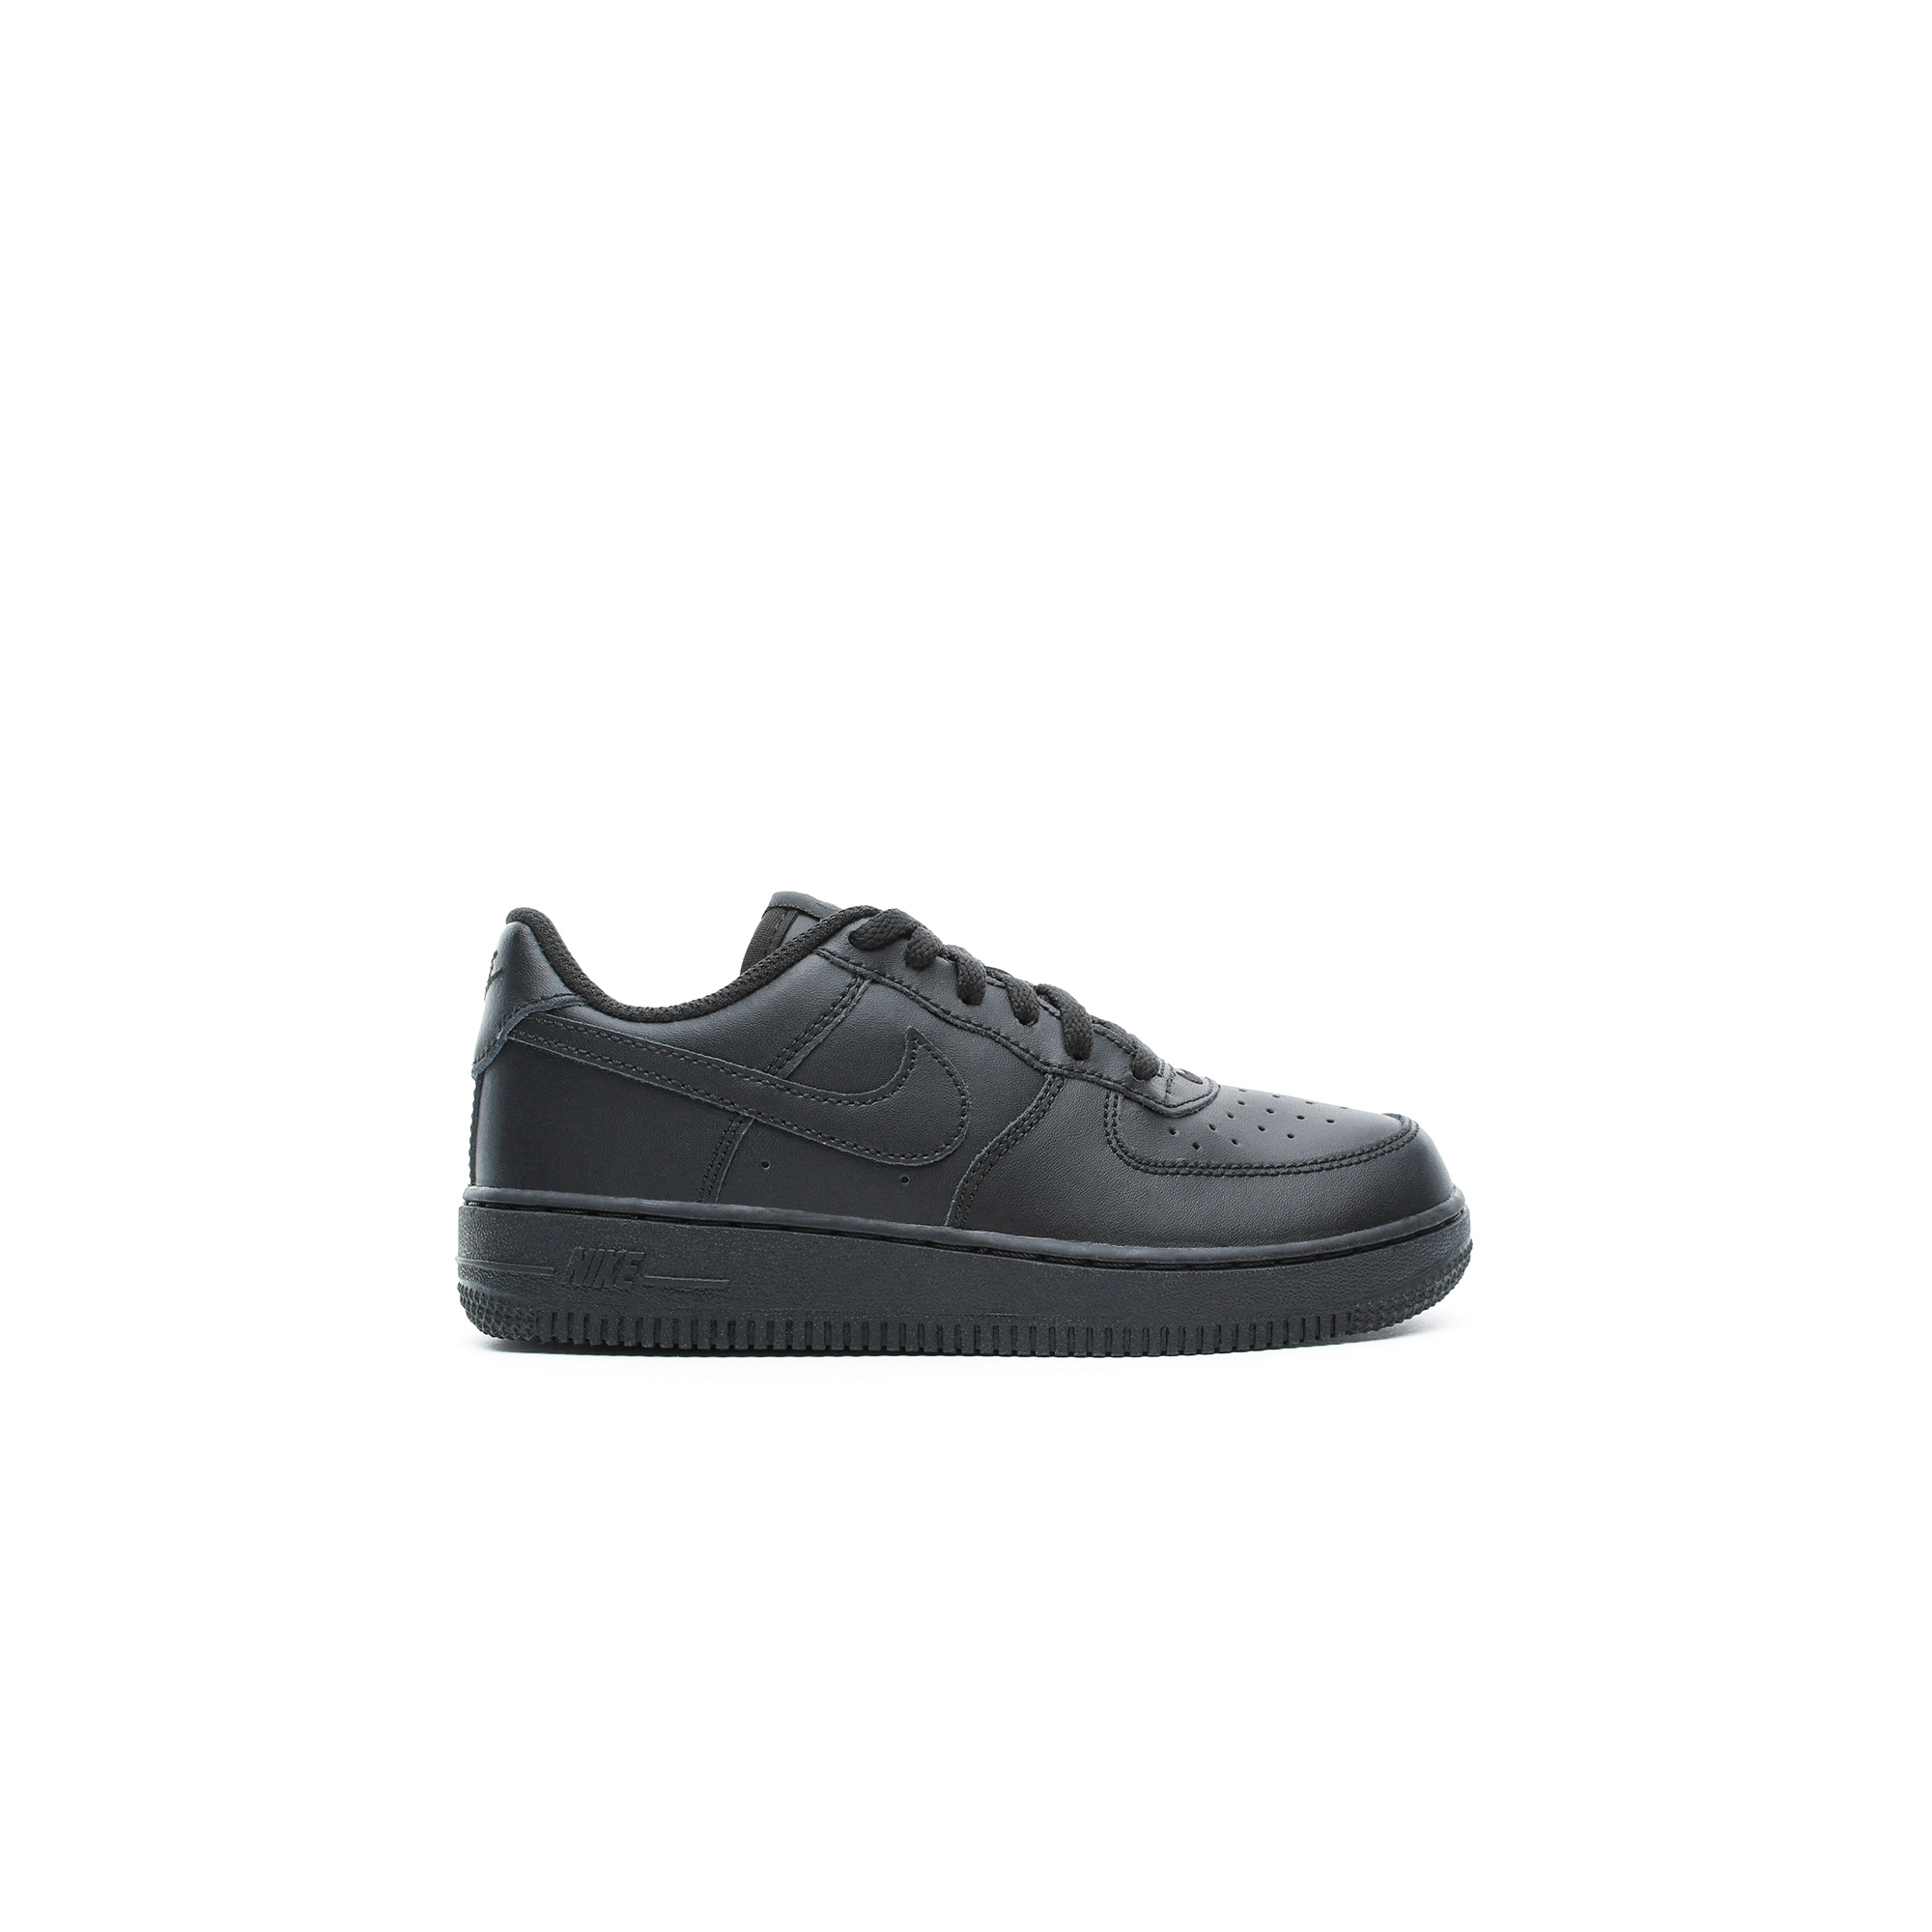 Кеди дитячі Nike NIKE FORCE 1 (PS)